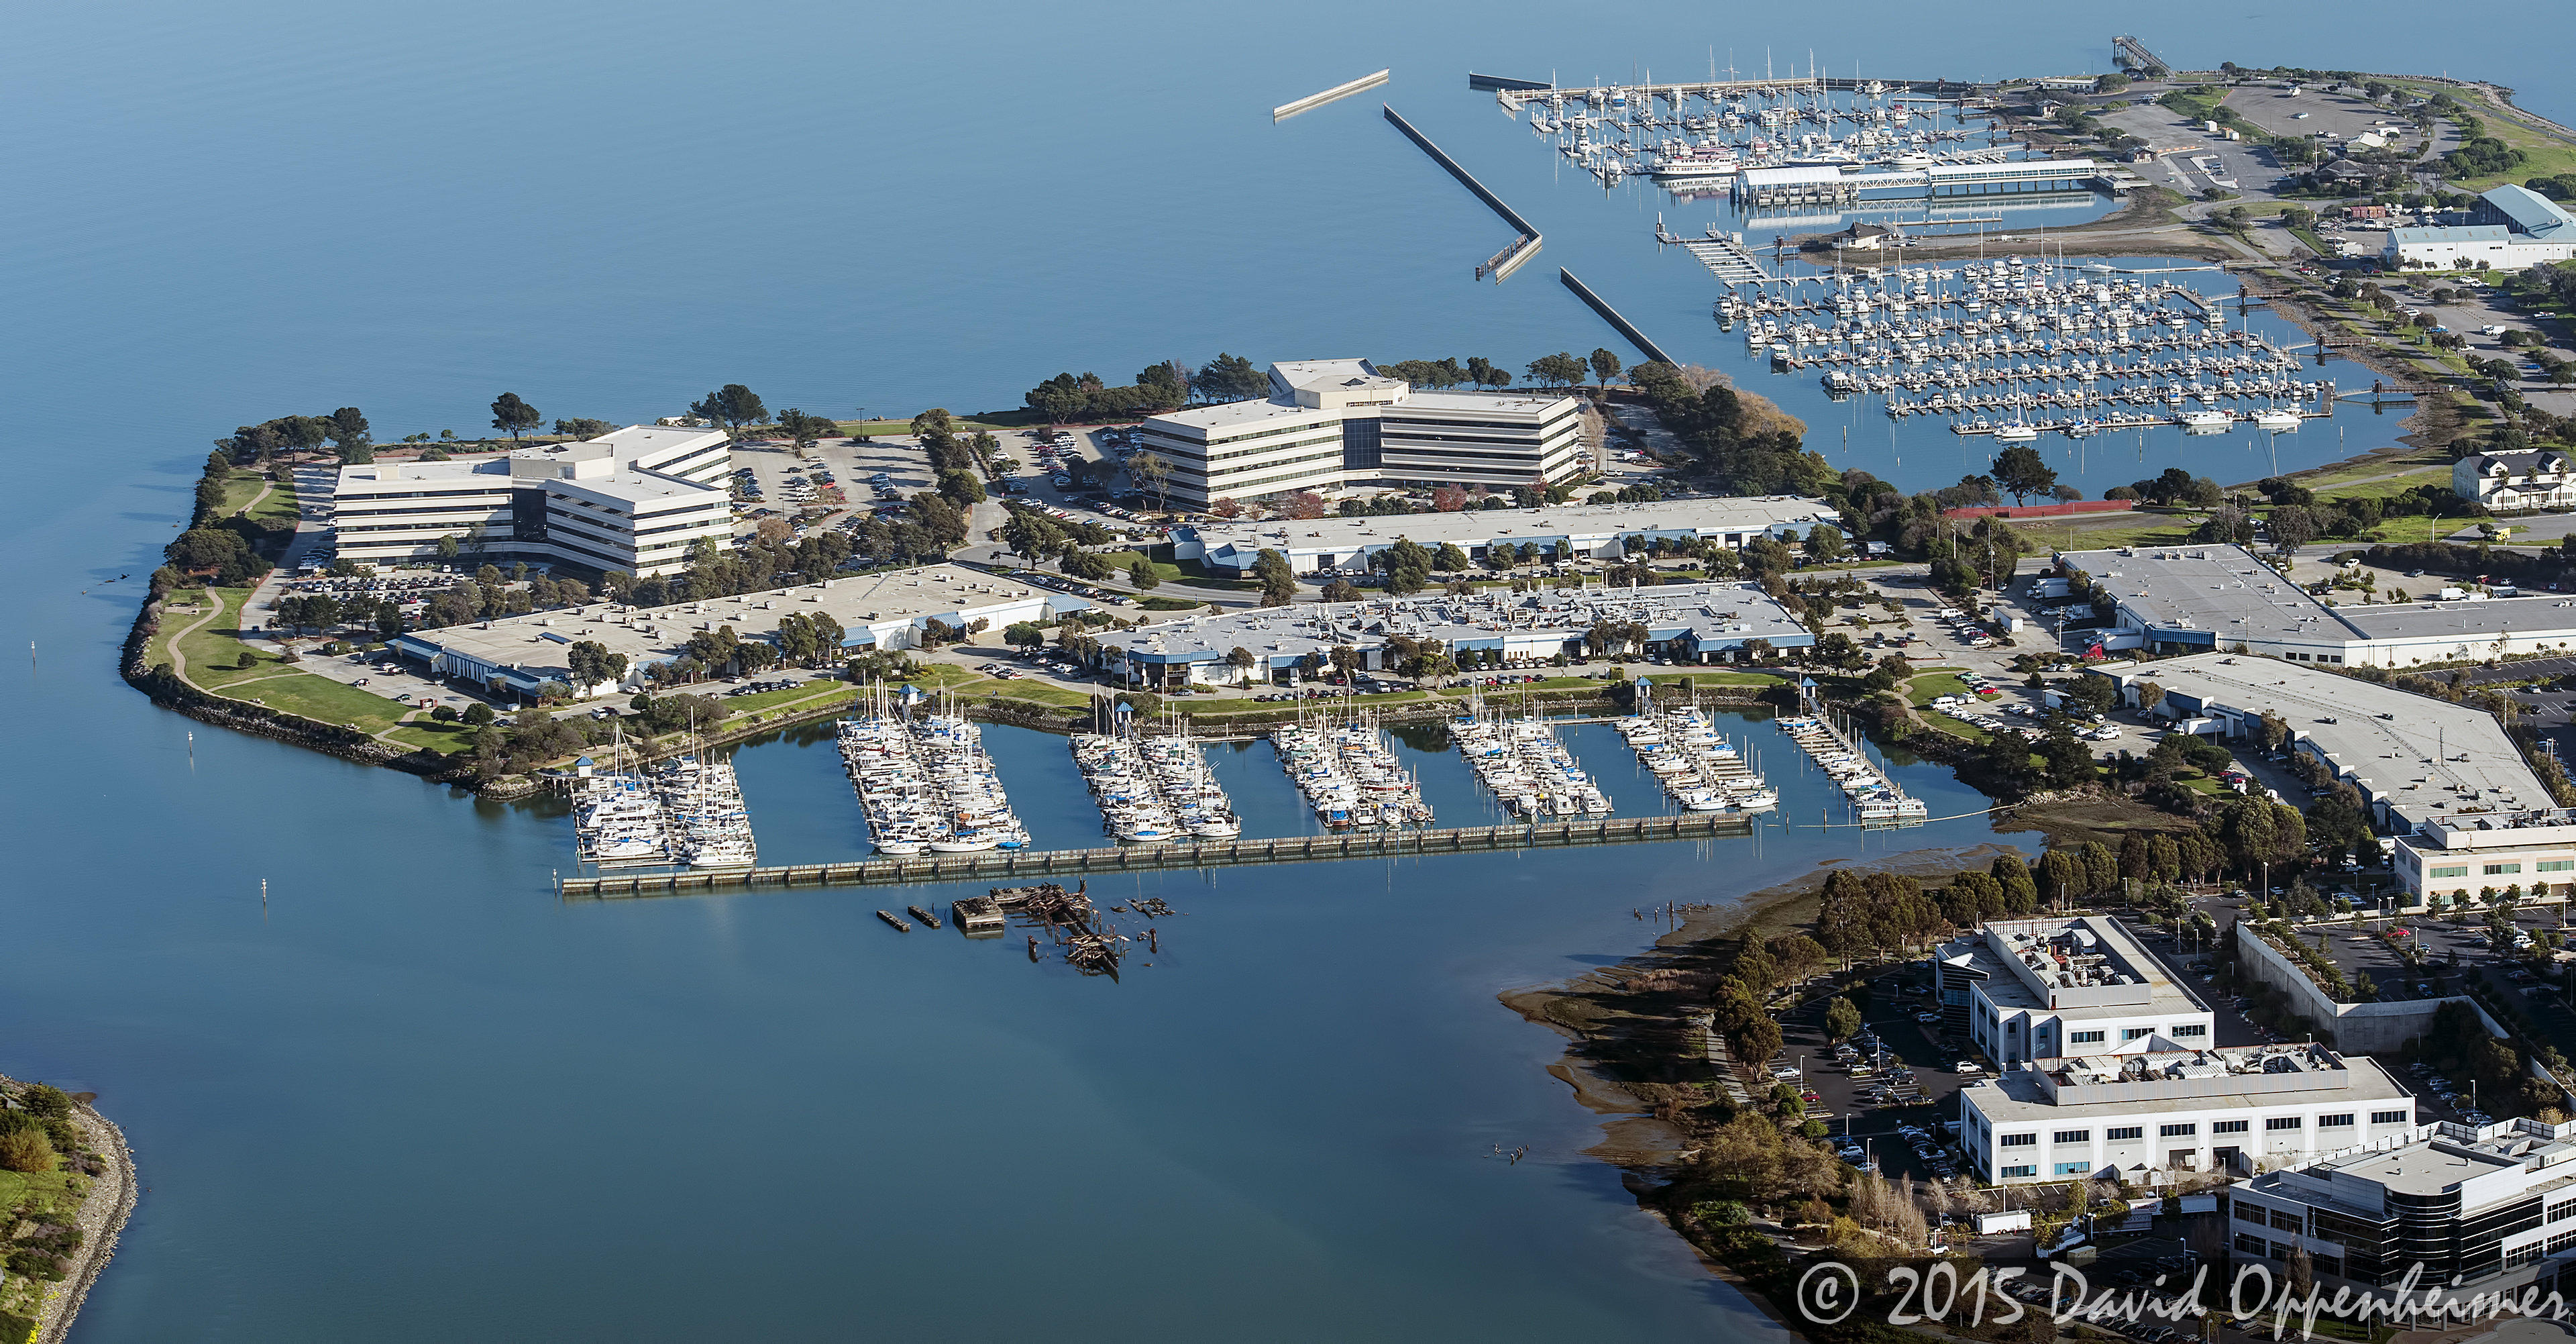 Oyster Point Oyster Point Marina an...